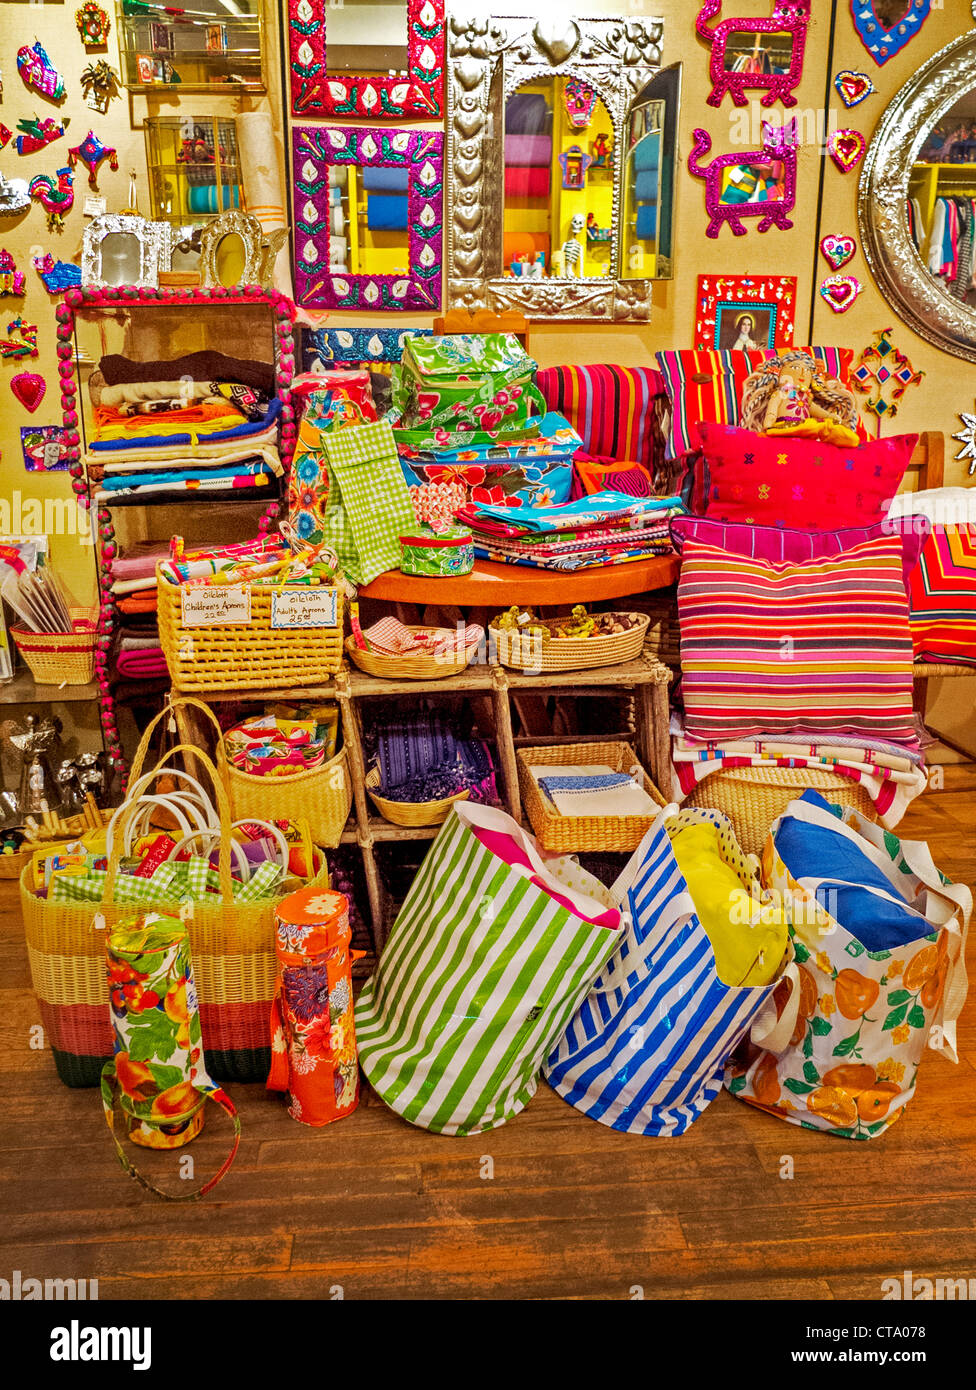 Colorful Mexican folk art is on display at a specialty gift store in midtown Manhattan, New York City. - Stock Image